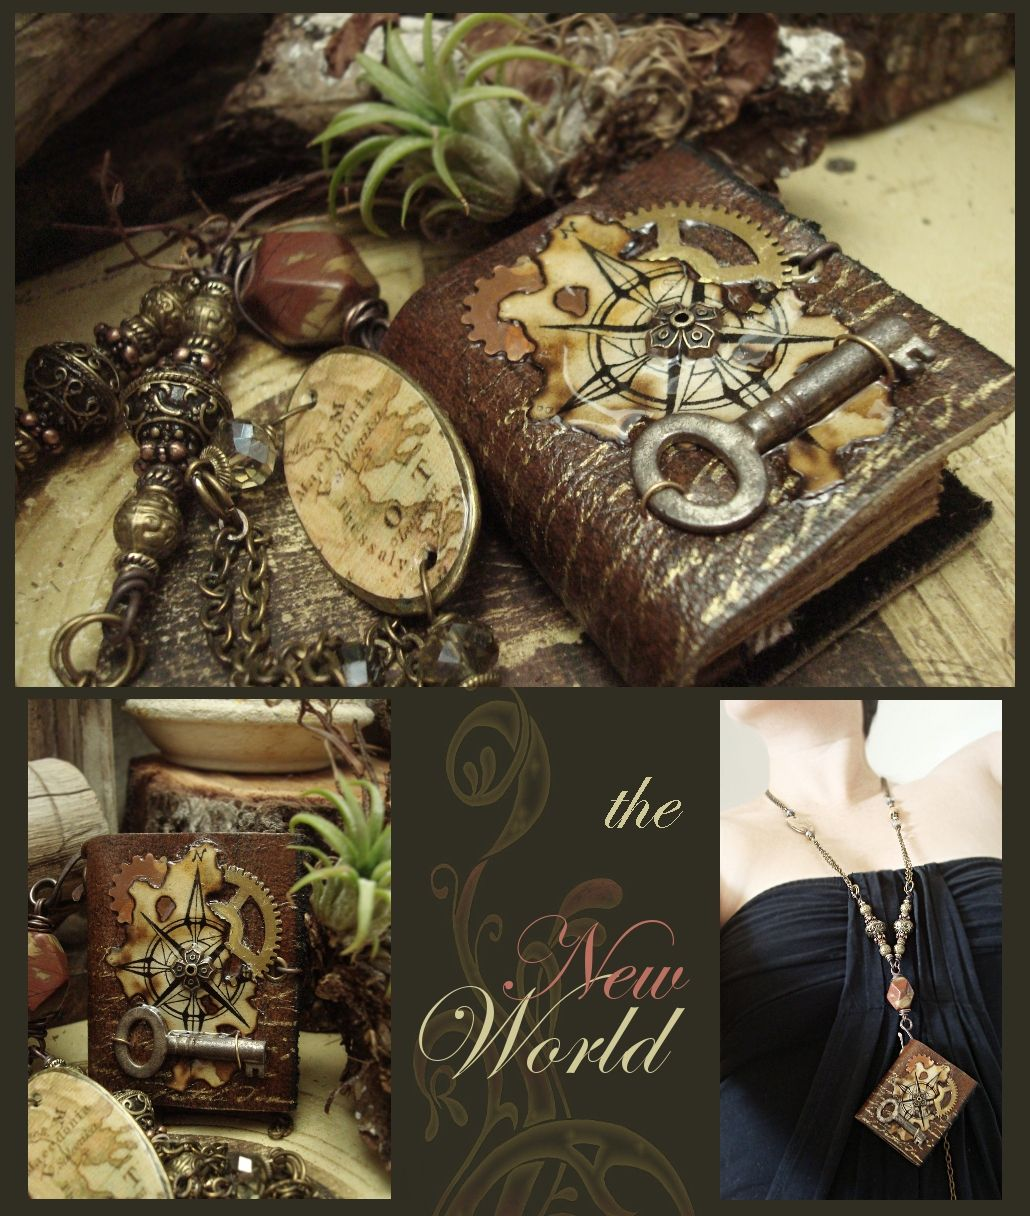 the New World by Luthien Thye